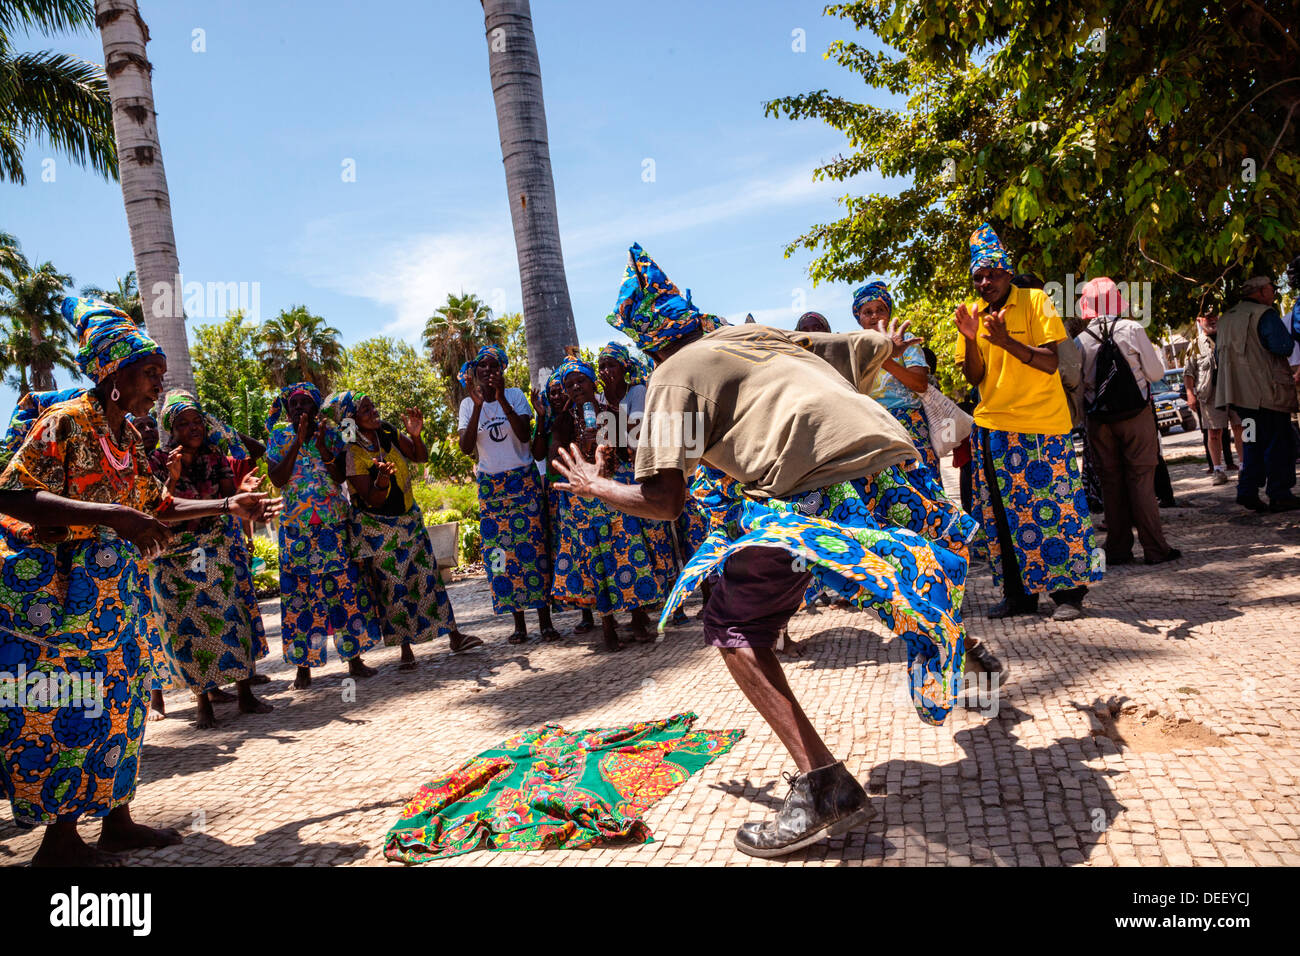 Africa, Angola, Benguela. Women and men dancing in traditional dress. Stock Photo